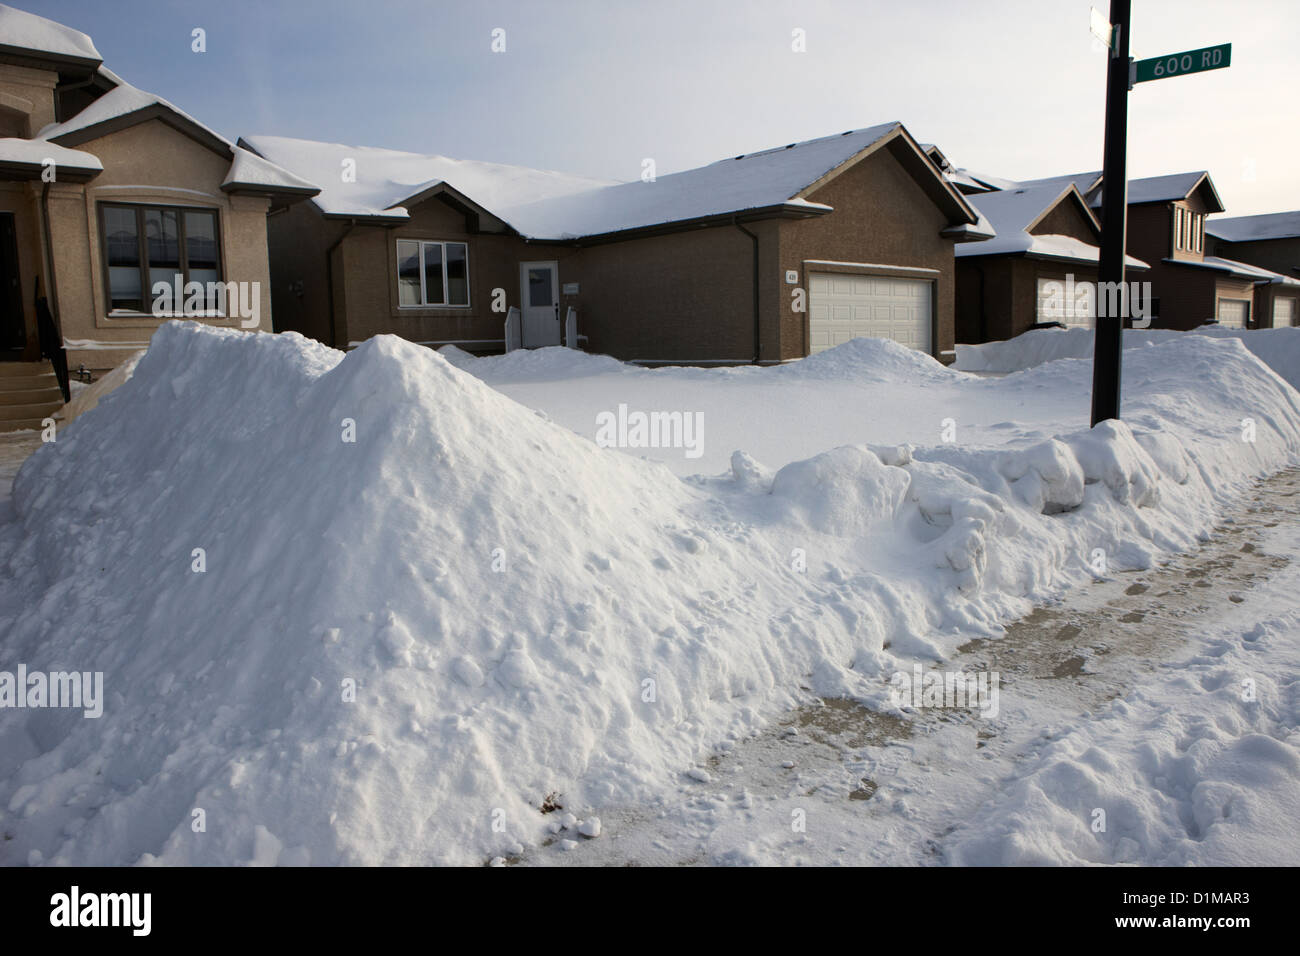 piles of cleared snow outside upmarket residential street during winter Saskatoon Saskatchewan Canada - Stock Image